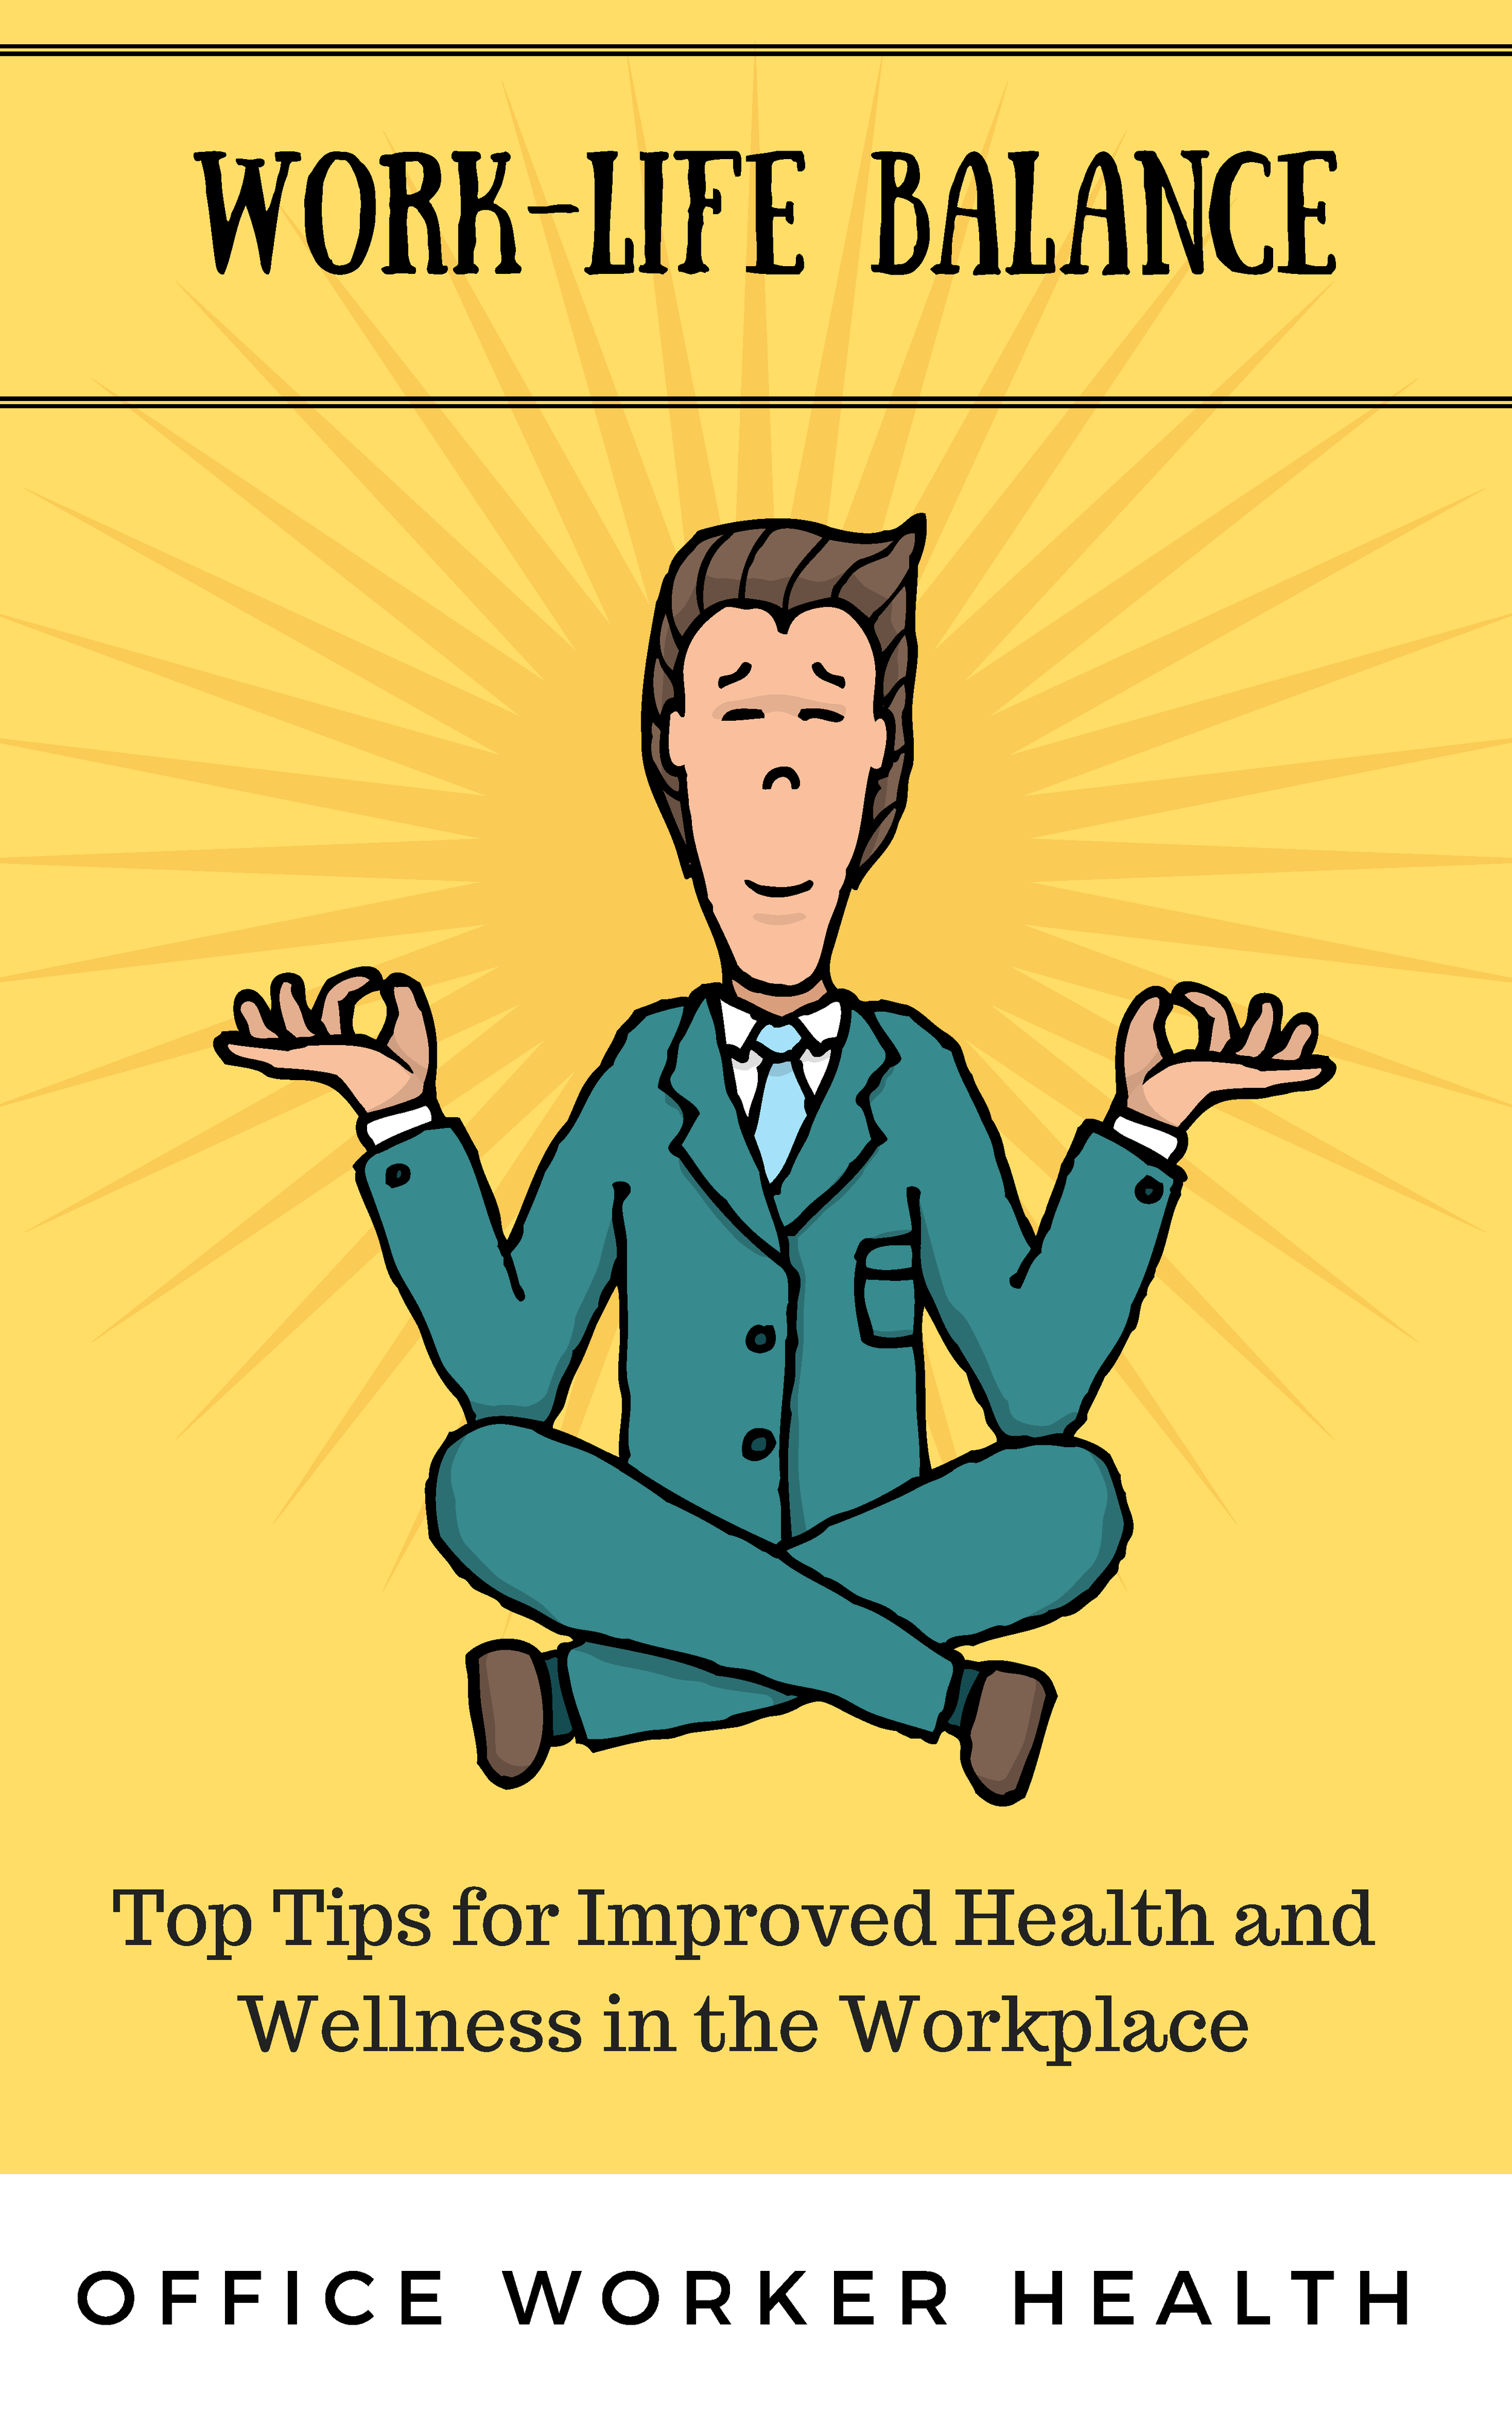 Work_Life_Balance_Top_Tips_for_Wellness_in_the_Workplace.png